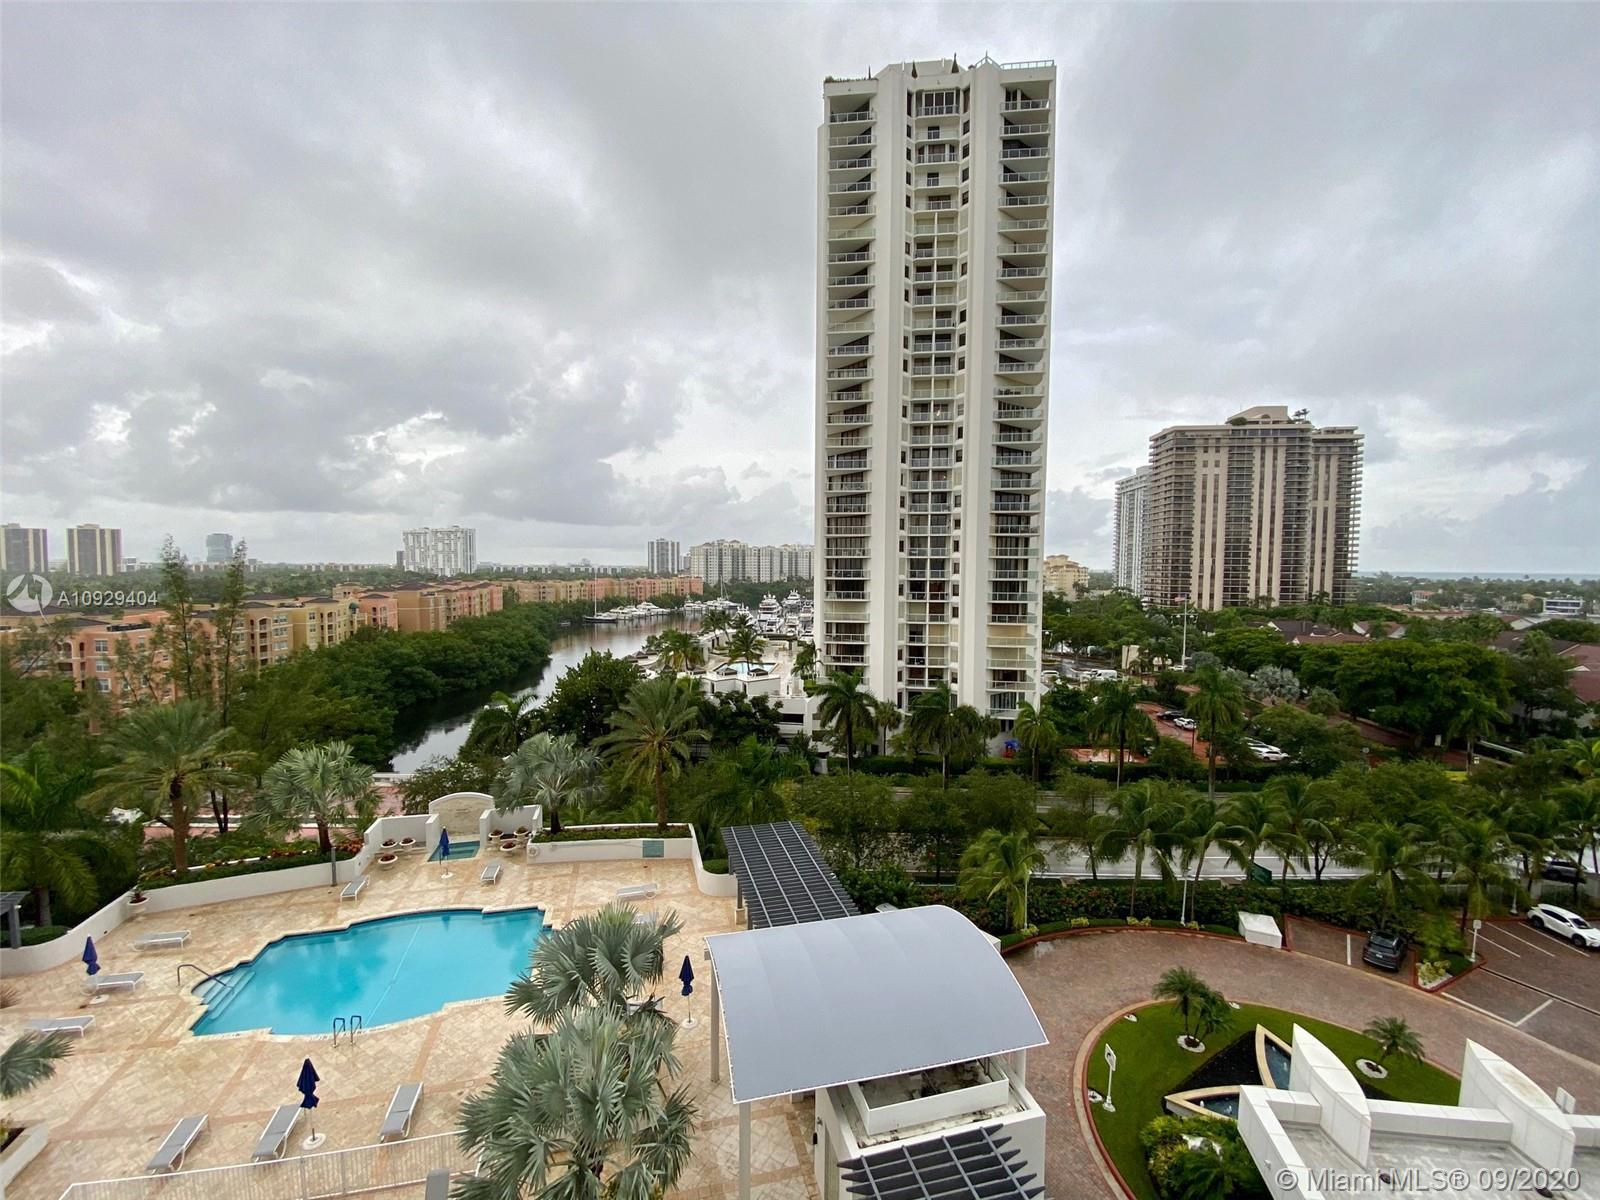 Spectacular condo in the heart of Aventura located steps from houses of worship and minutes from the